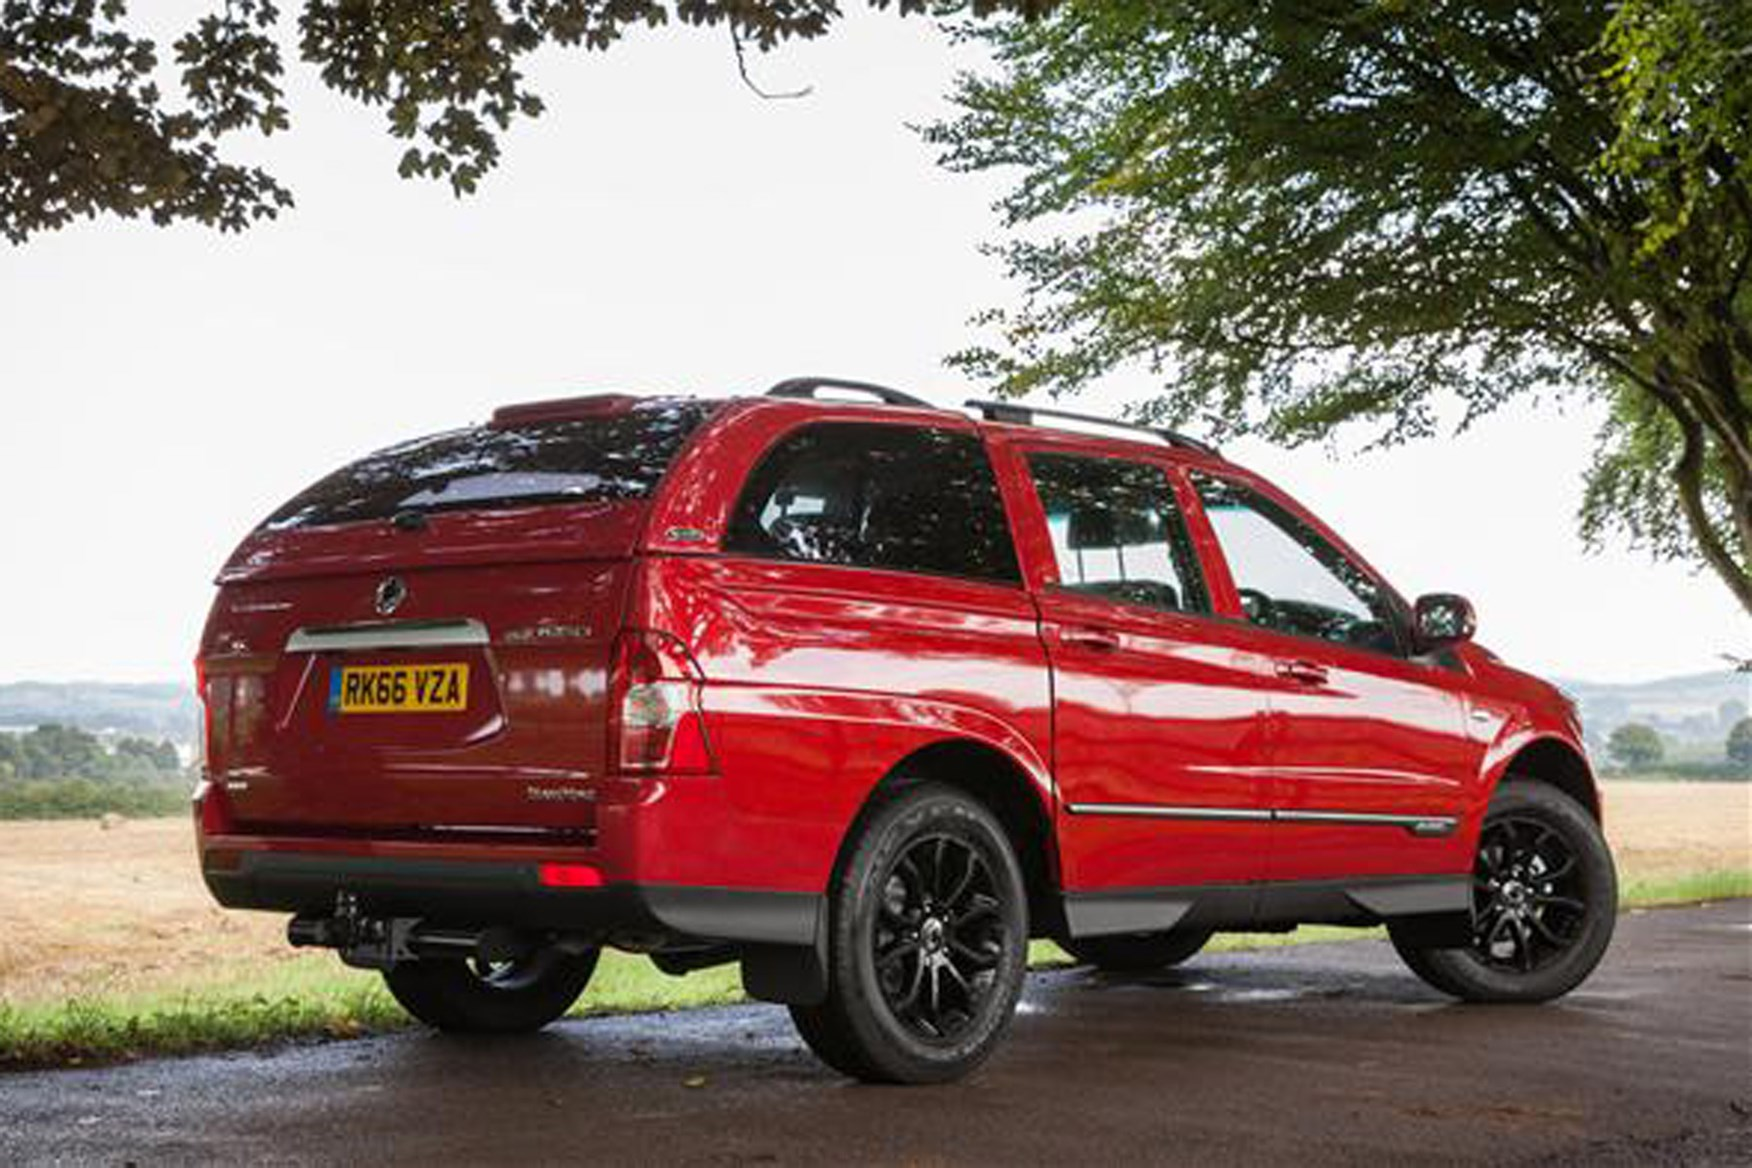 SsangYong Musso full review on Parkers Vans -rear exterior